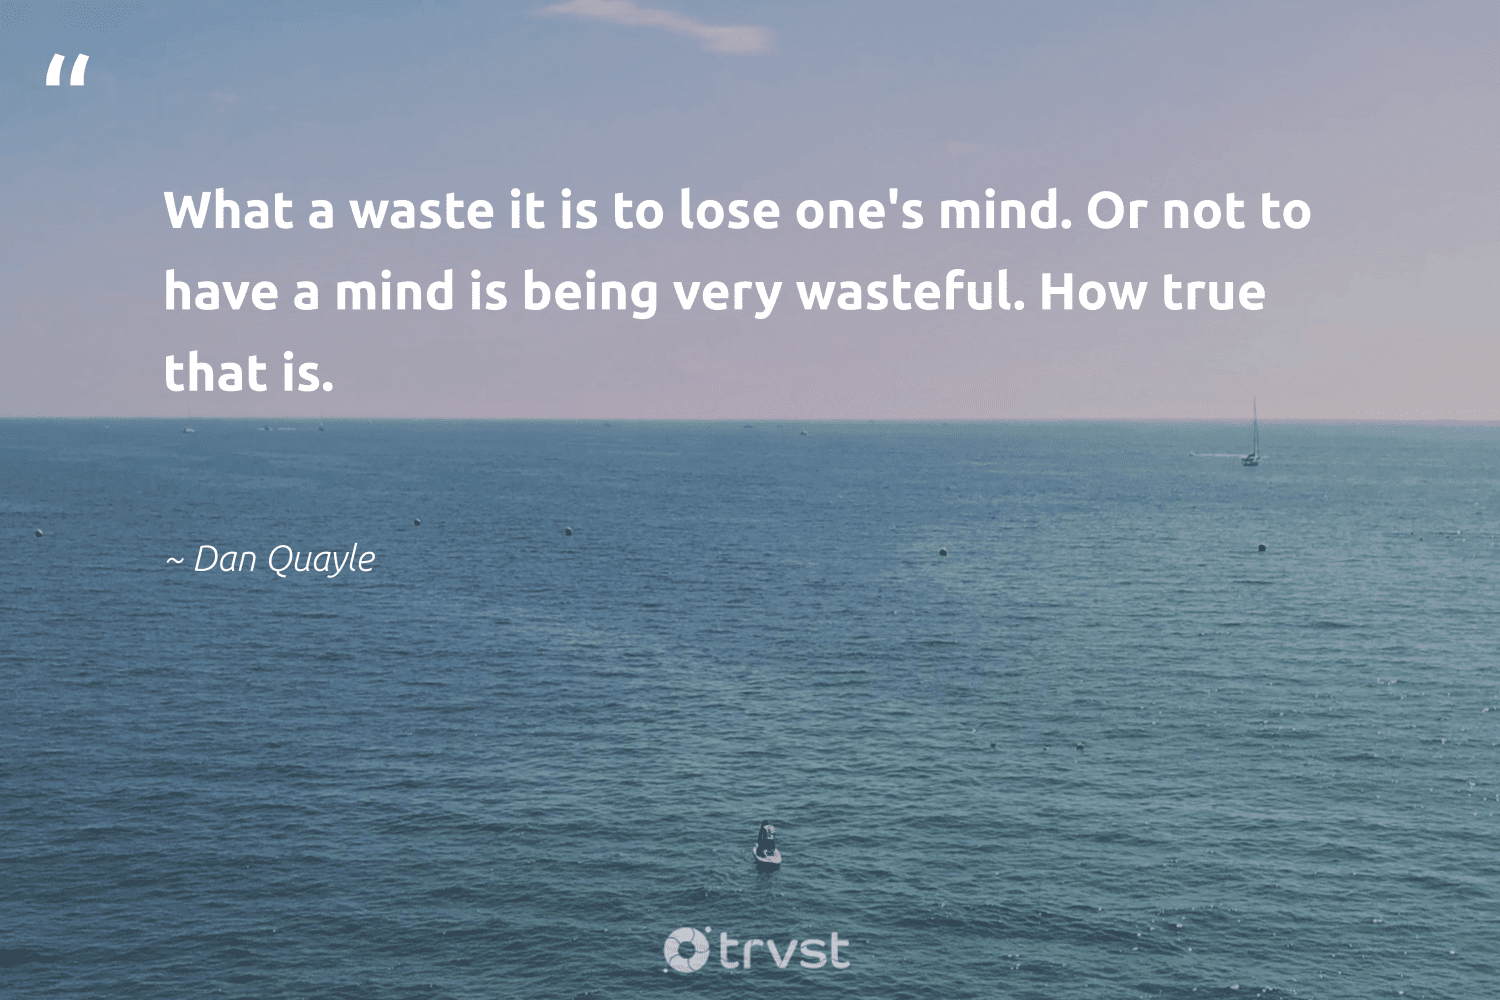 """""""What a waste it is to lose one's mind. Or not to have a mind is being very wasteful. How true that is.""""  - Dan Quayle #trvst #quotes #waste #health #gogreen #nevergiveup #planetearthfirst #begreat #socialimpact #changemakers #impact #togetherwecan"""